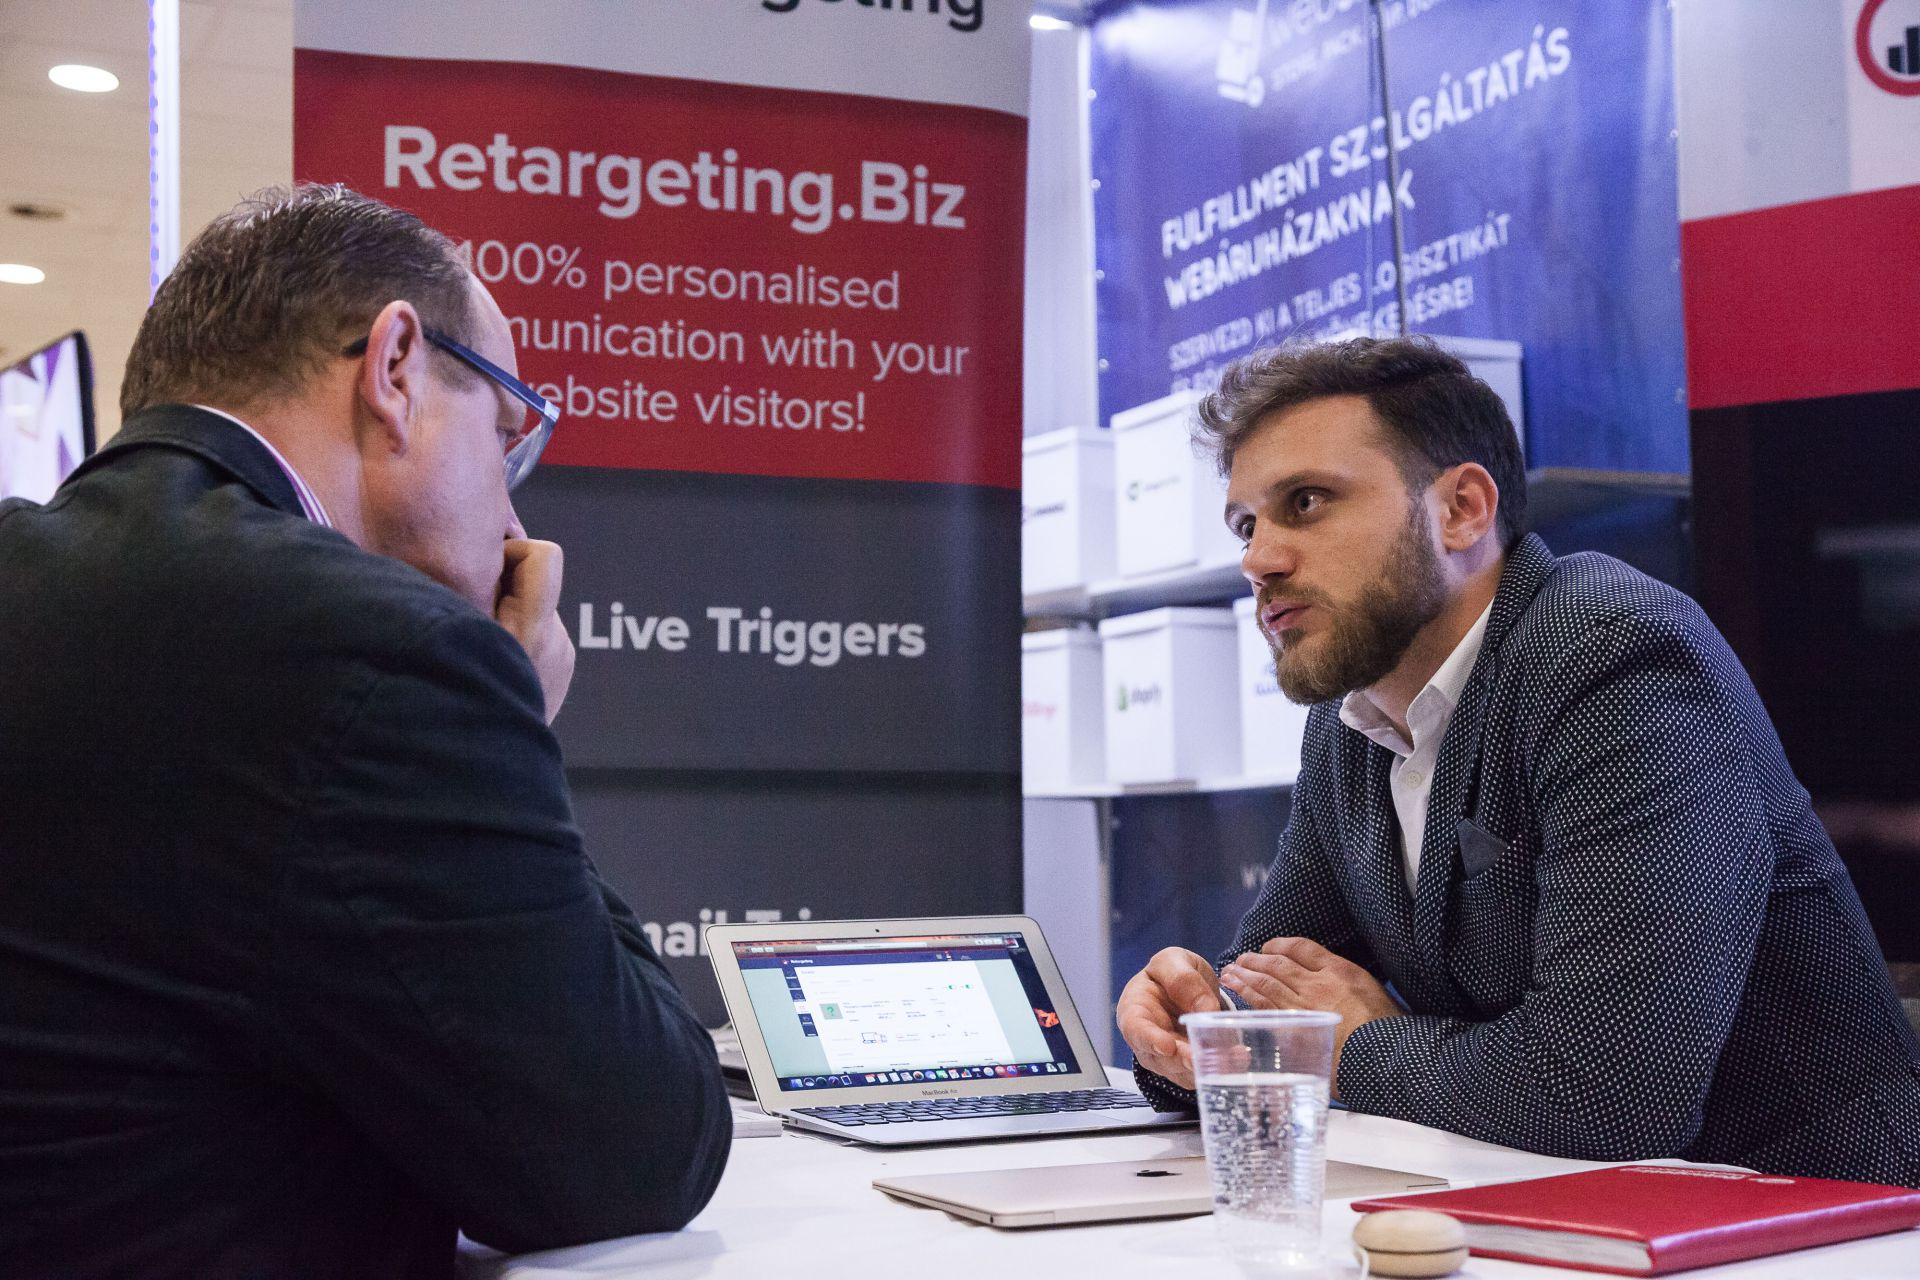 Retargeting in Hungary, at the Ecommerce Expo Budapest 2017